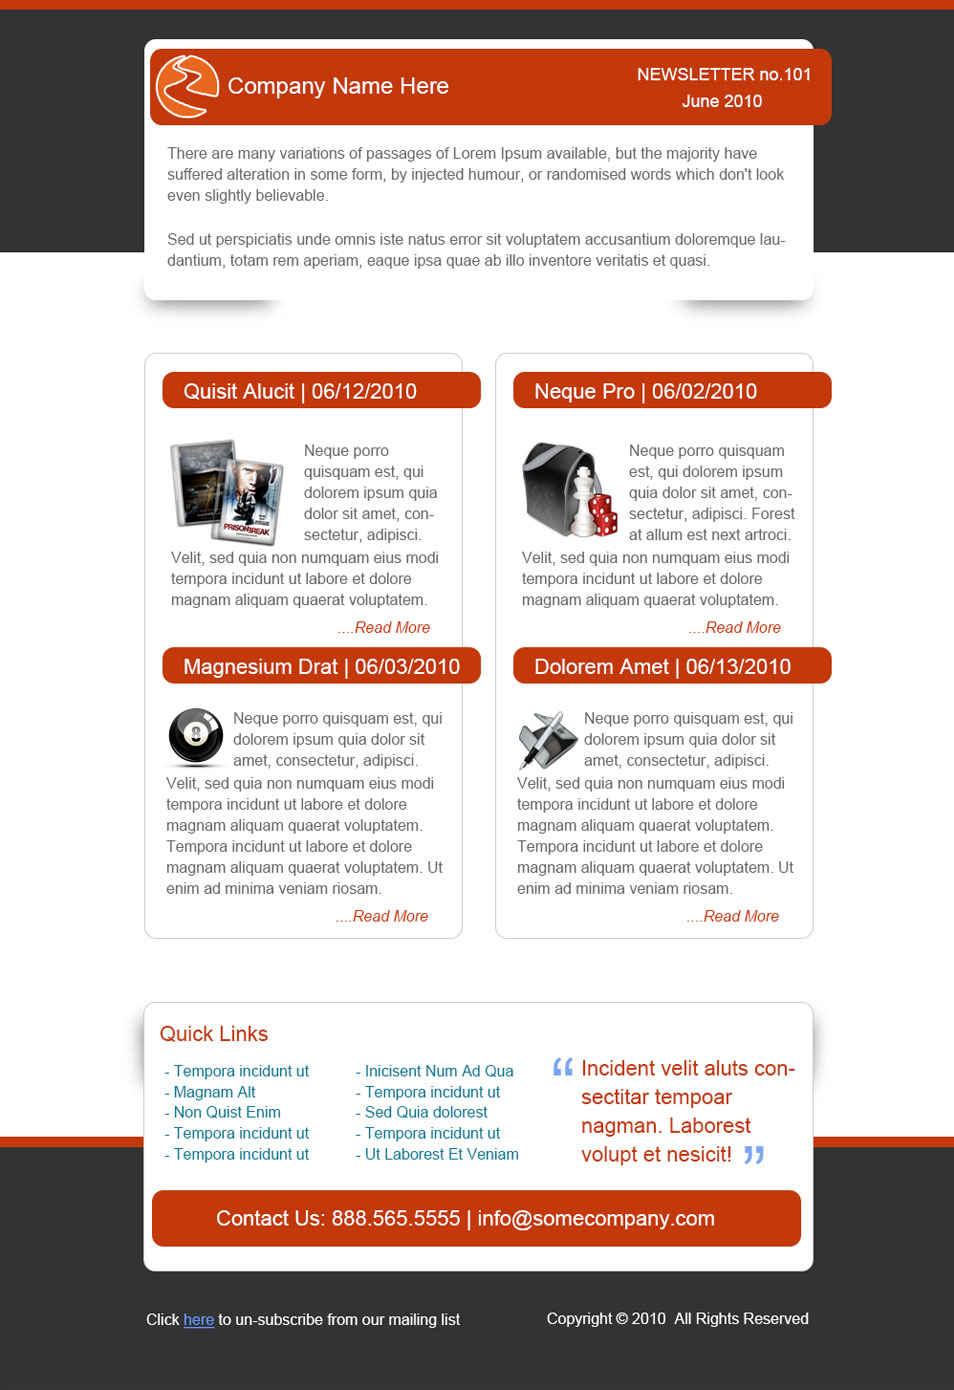 E-Solutions: Free PSD Email Newsletter Template